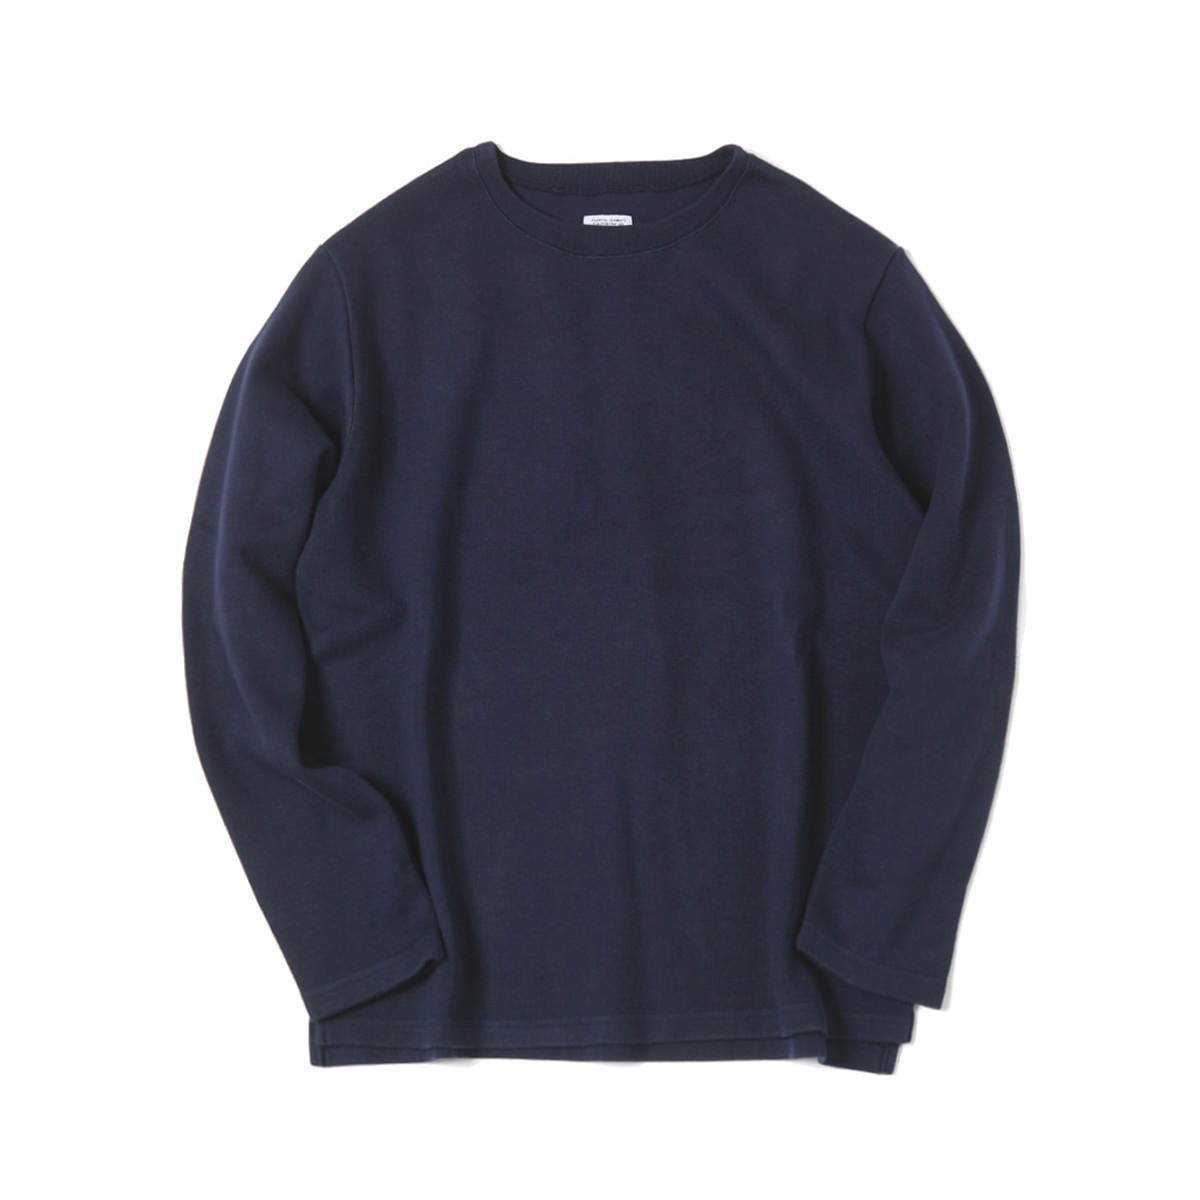 [ELSEWEAR] DON'T WORRY L/S TEE 'NAVY'